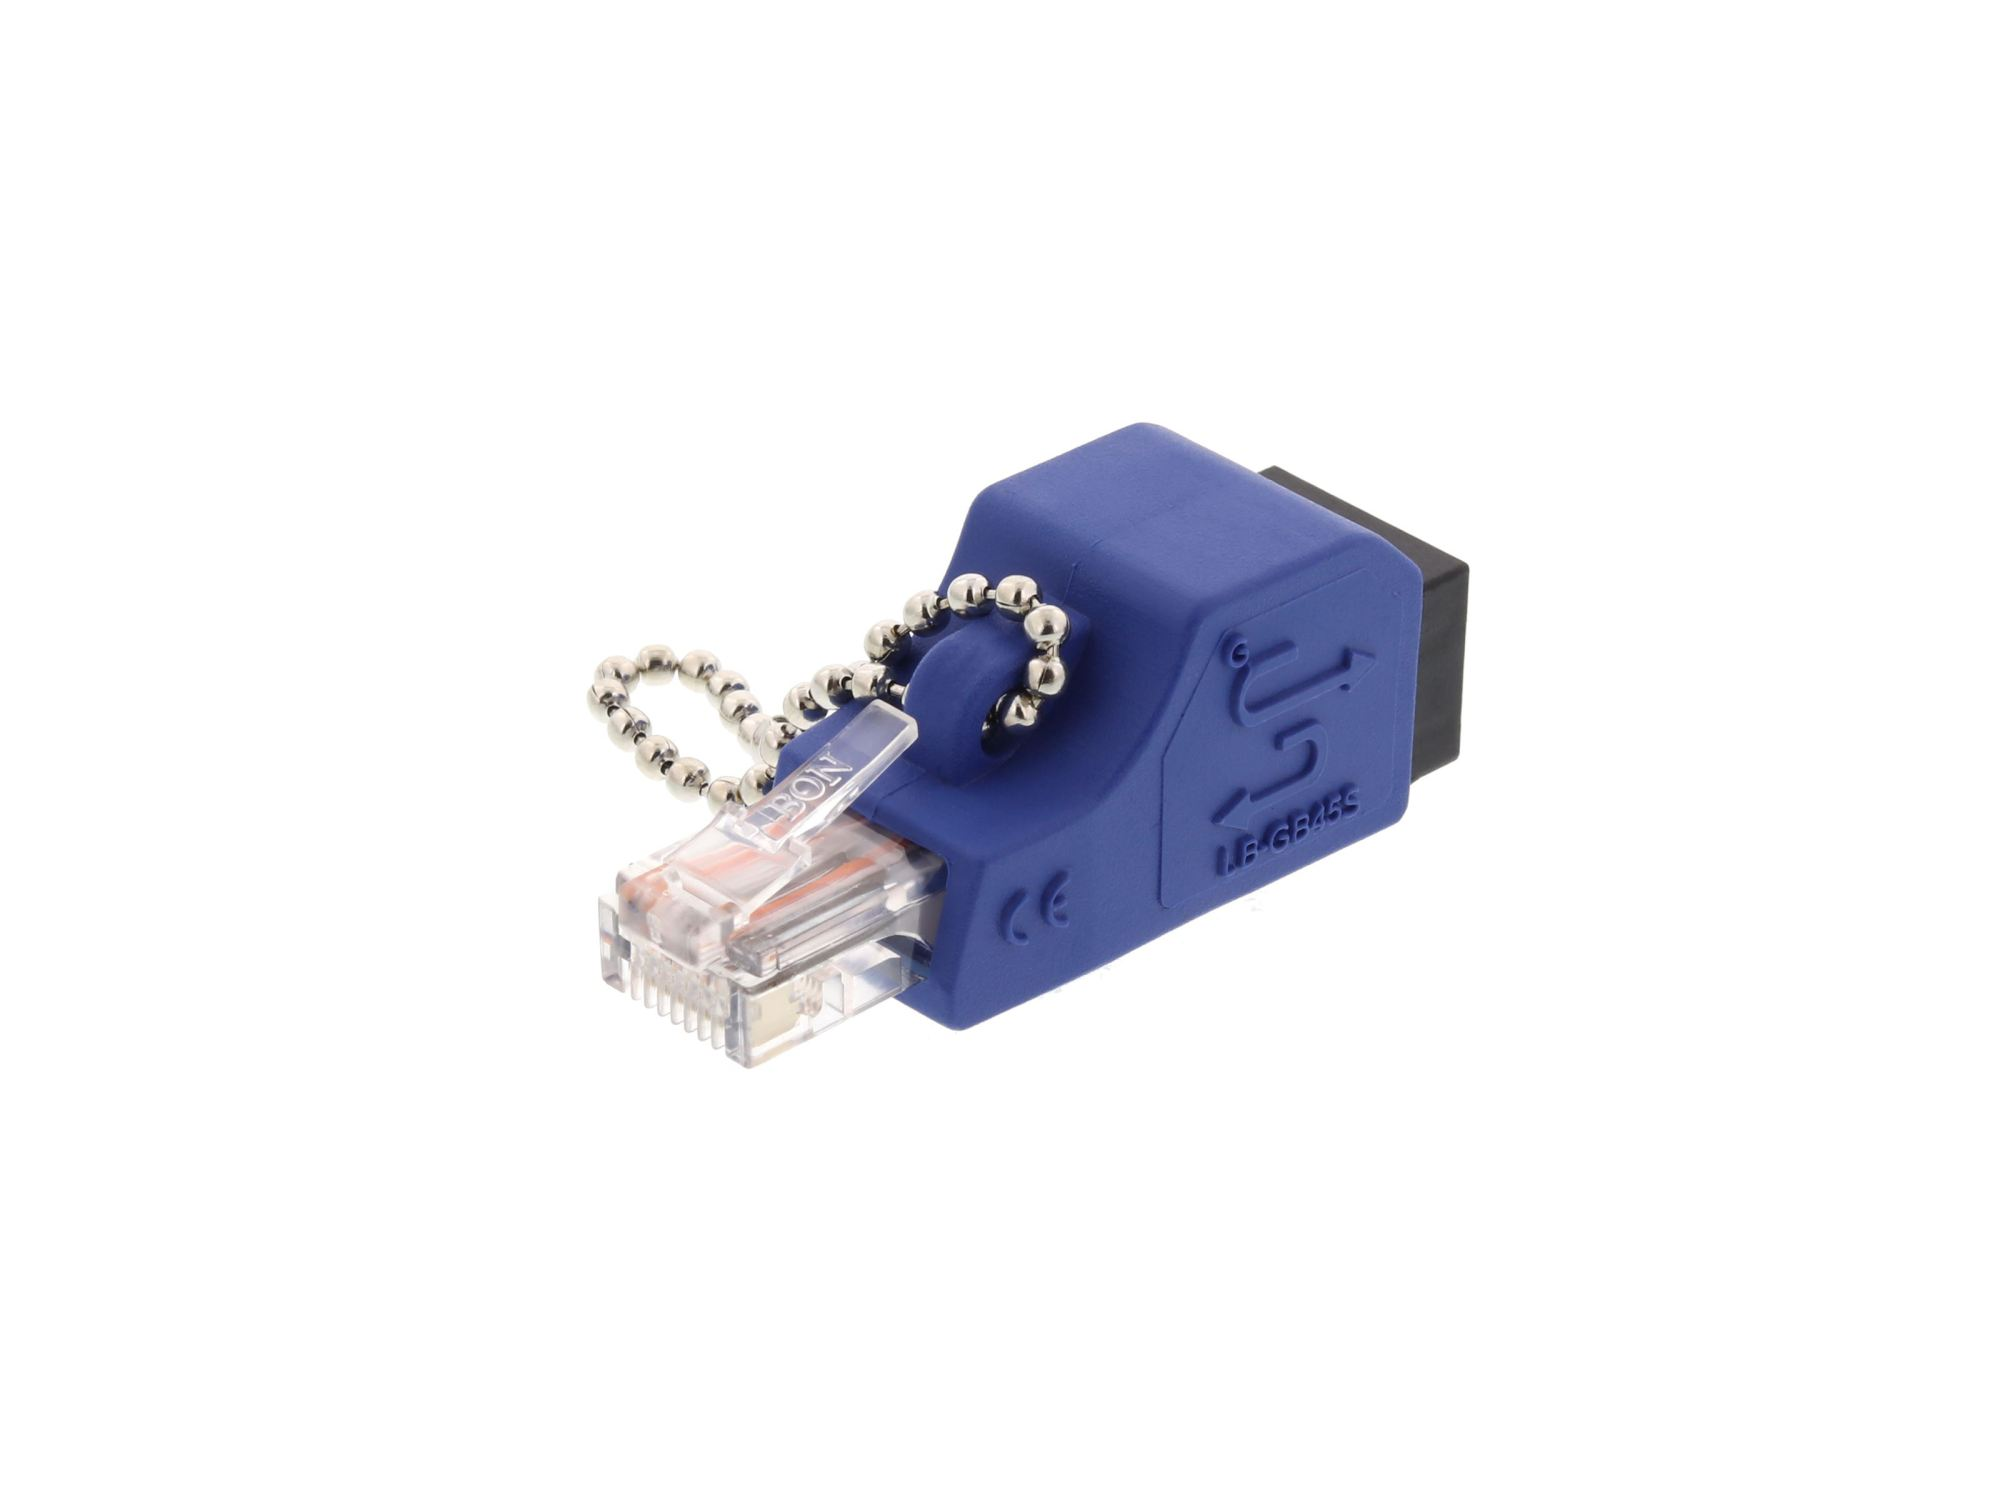 hight resolution of picture of gigabit rj45 loopback tester